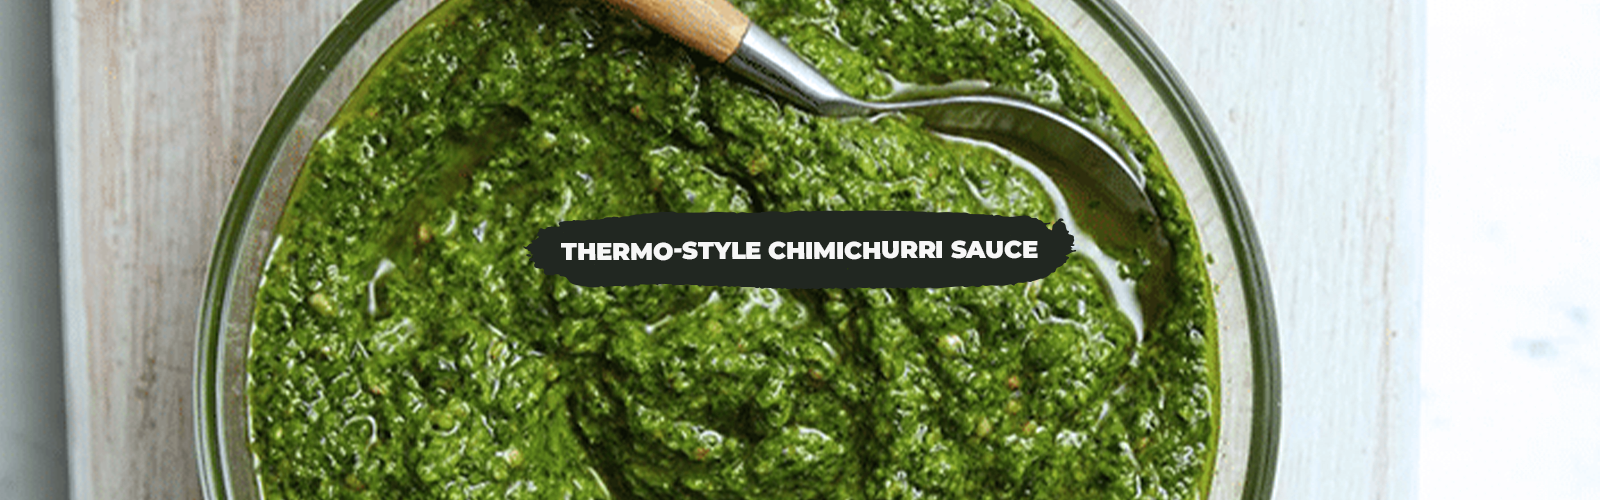 Thermo-Style Chimichurri Sauce